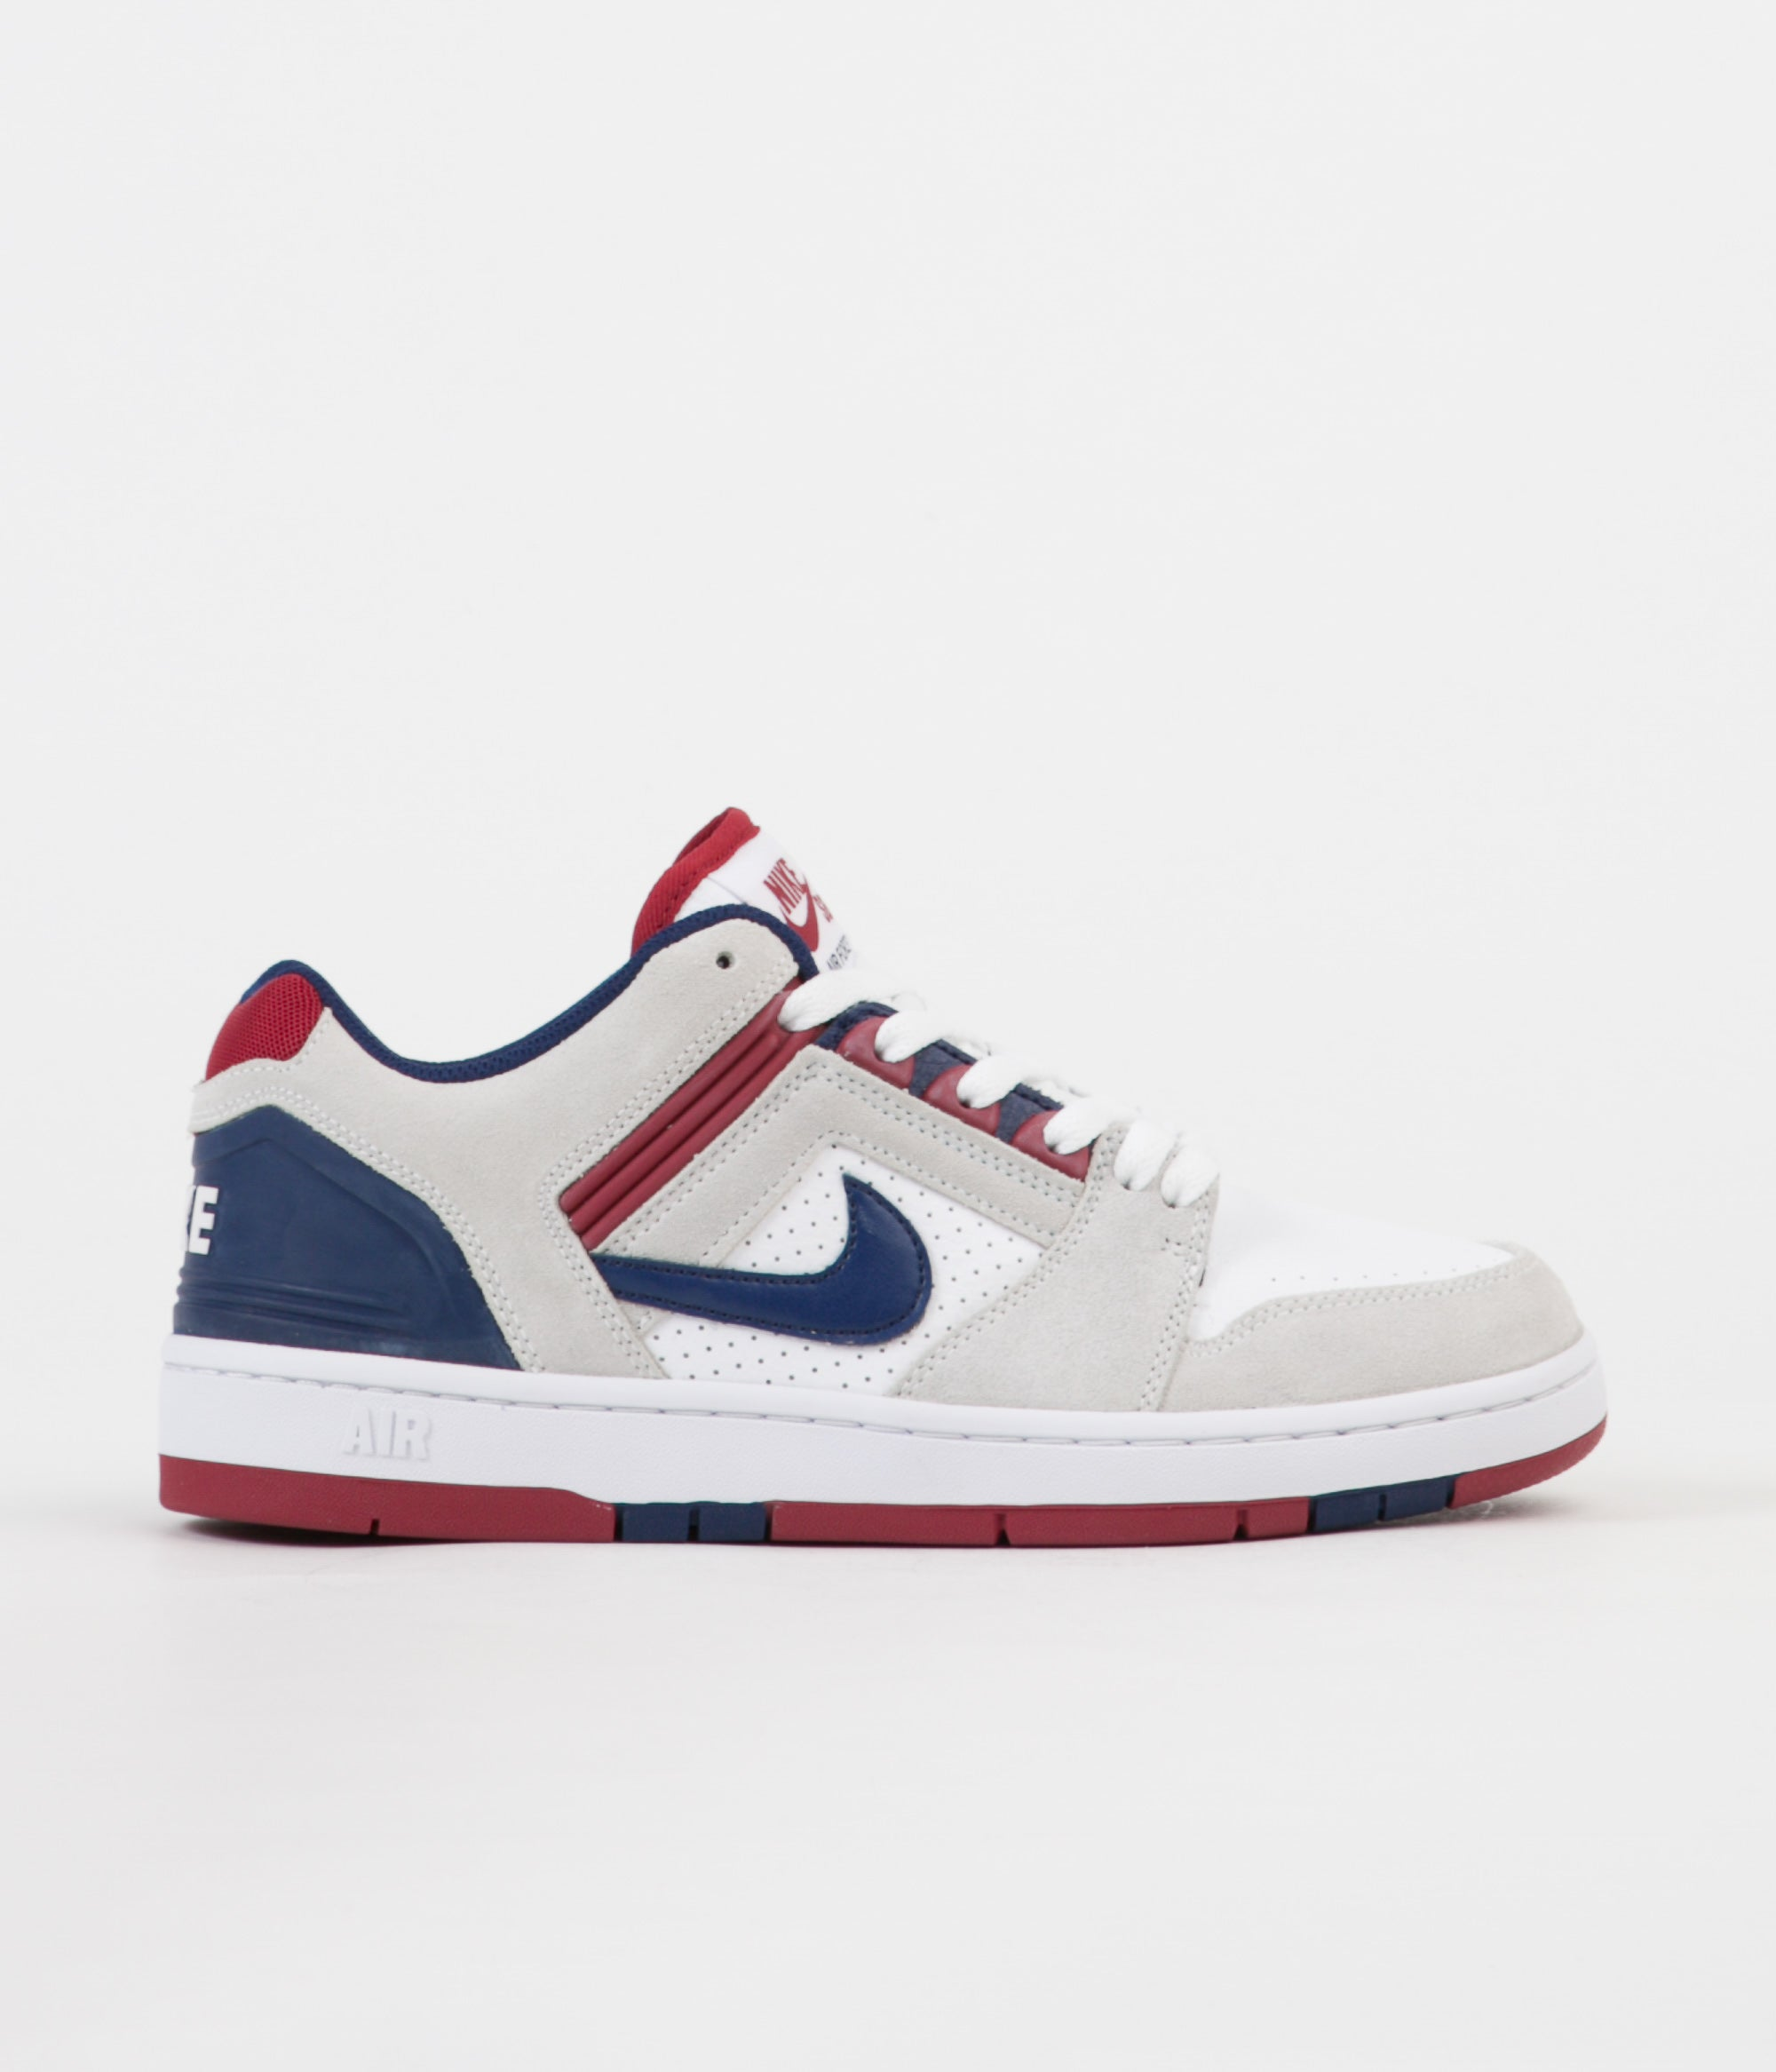 eb39a84995064 Nike SB Air Force II Low Shoes - White   Blue Void - Red Crush - White